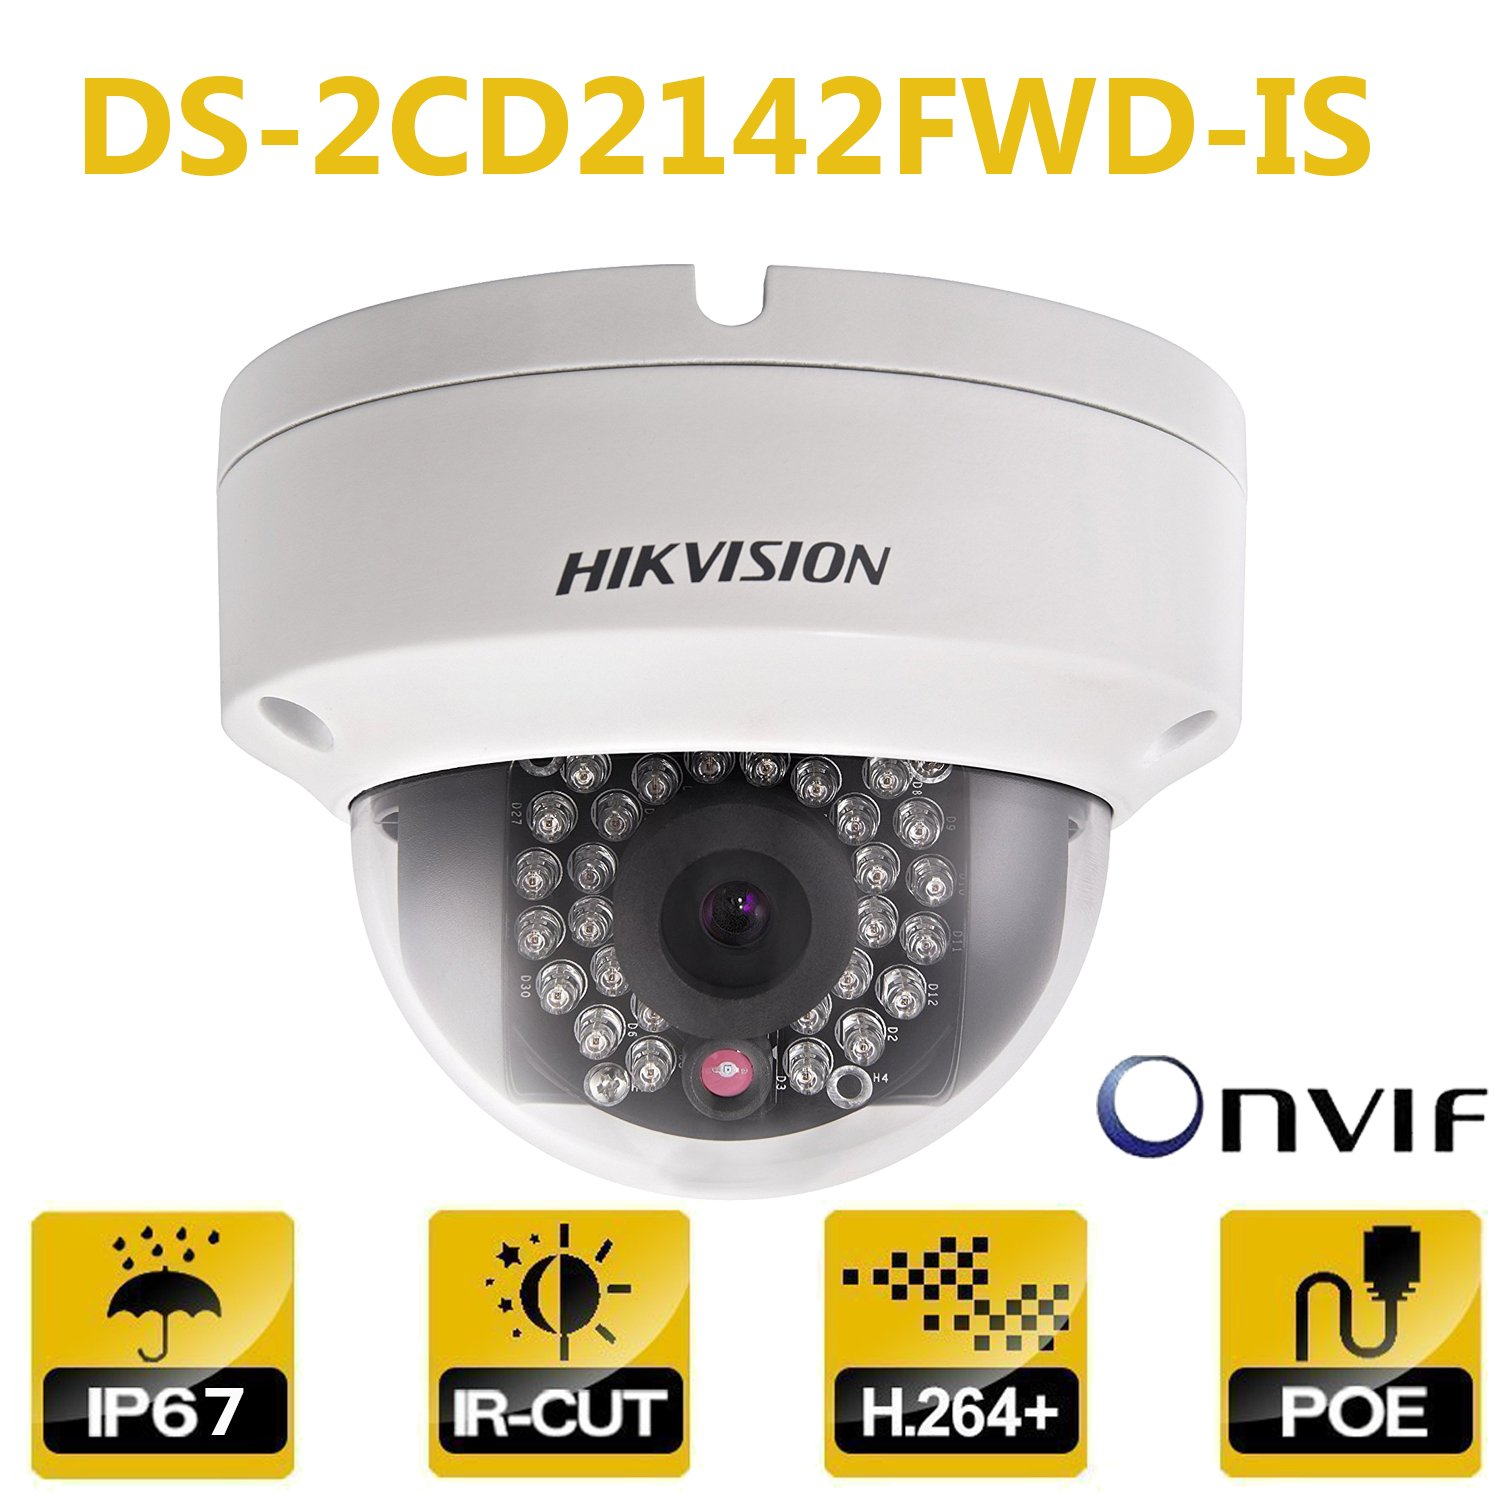 Hikvision Dome IP Camera DS-2CD2142FWD-IS 4MP 2.8Mm Lens PoE Network Security Camera HD 1080P Day/Night IR To 30M Wide Dynamic Range Ip67 IK10 H.264 Onvif English Version